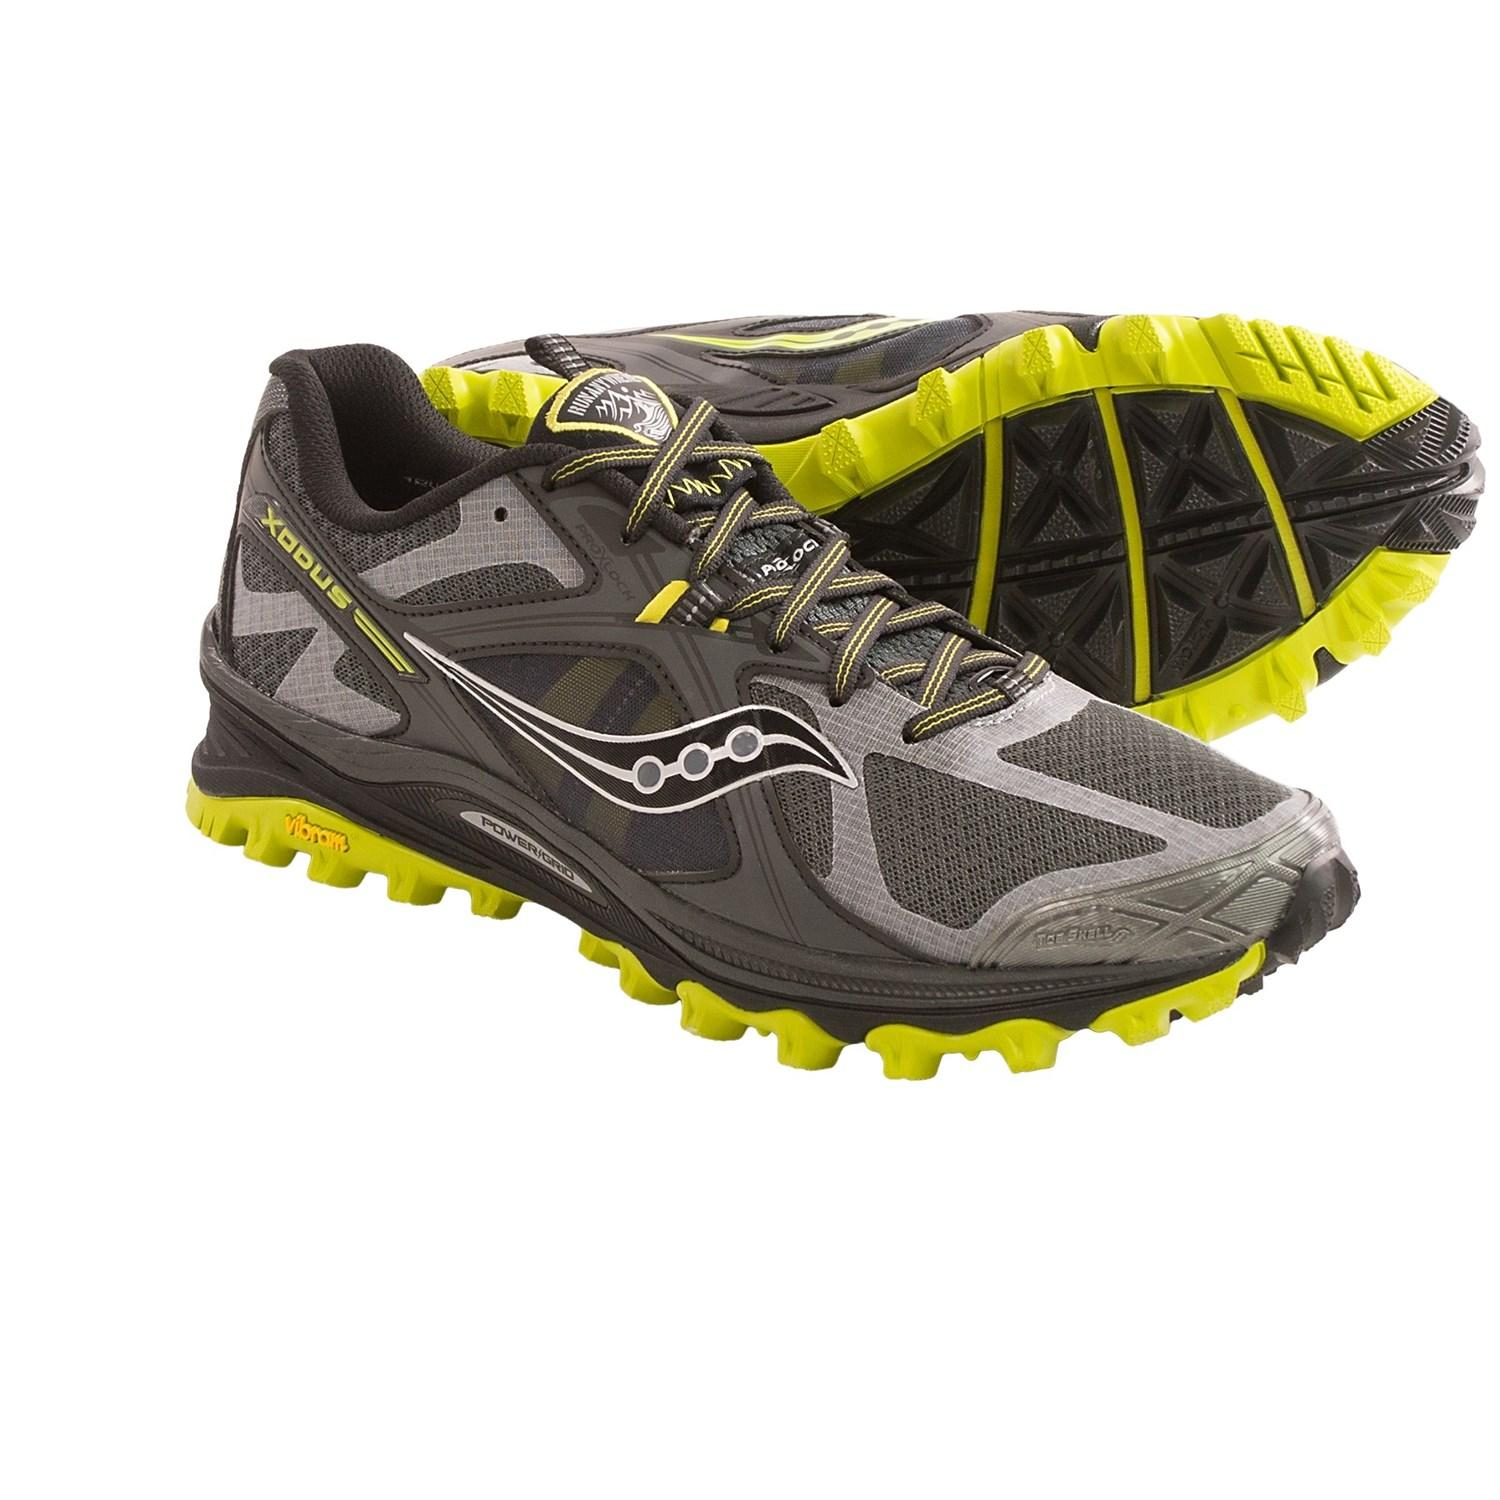 Saucony Xodus 5.0 Trail Men's Running Shoes